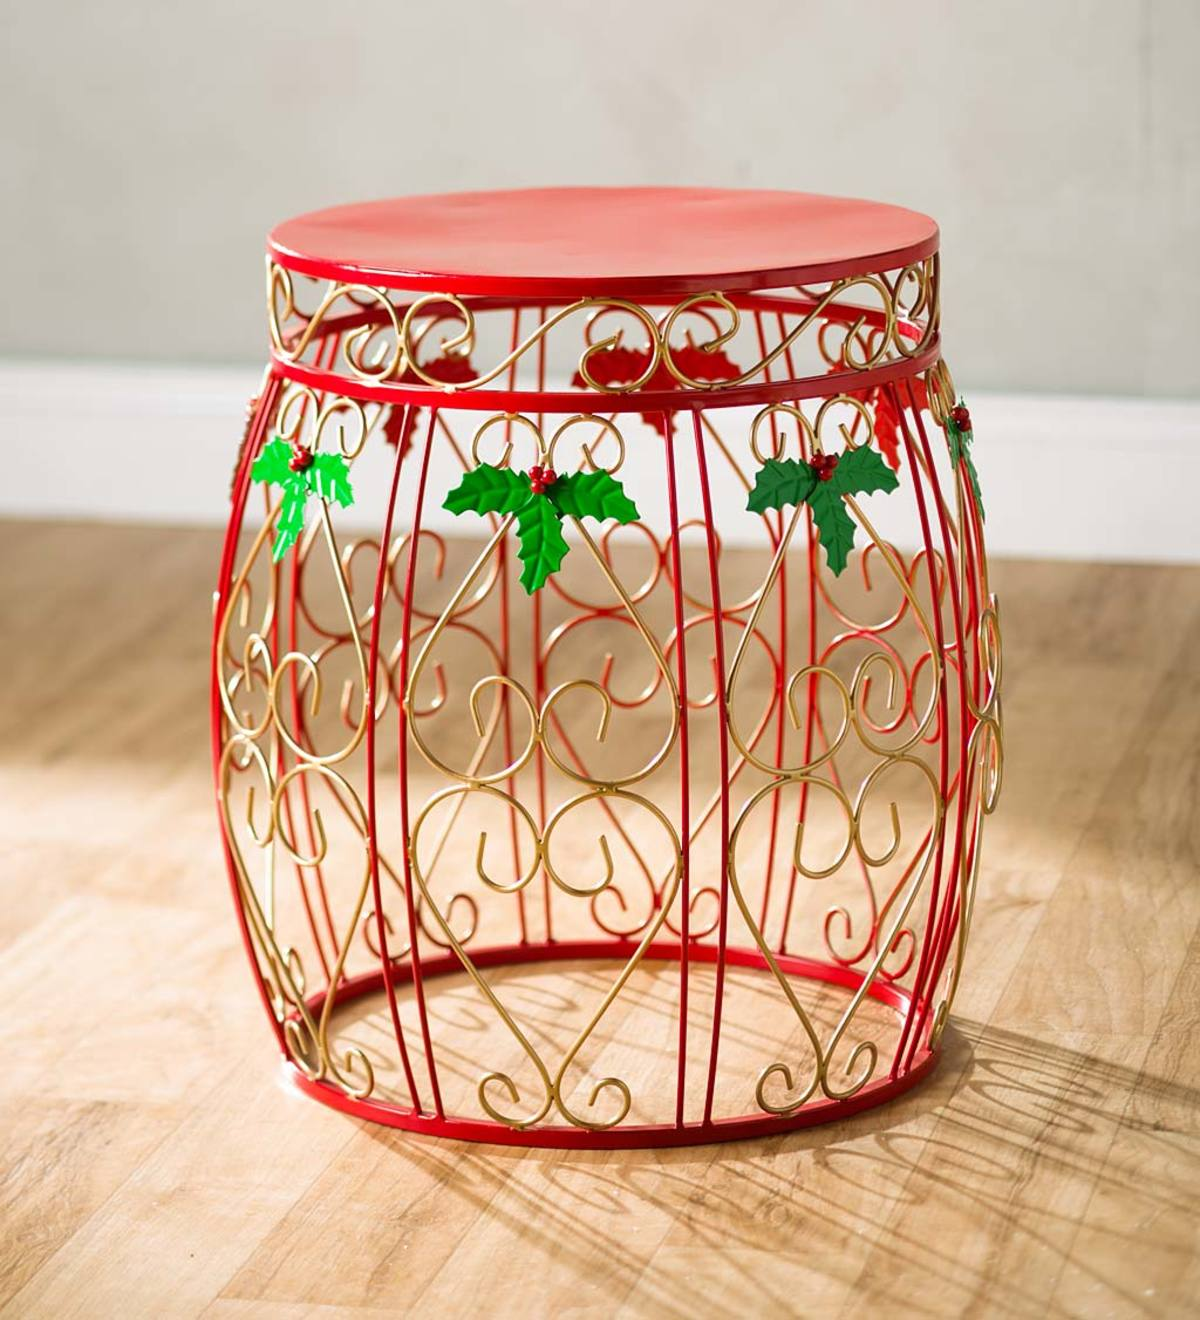 indoor outdoor holiday drum accent table plowhearth diy end plans glass mirror dresser tray set tripod lamp drop leaf side living room furniture sets clearance steven alan folding